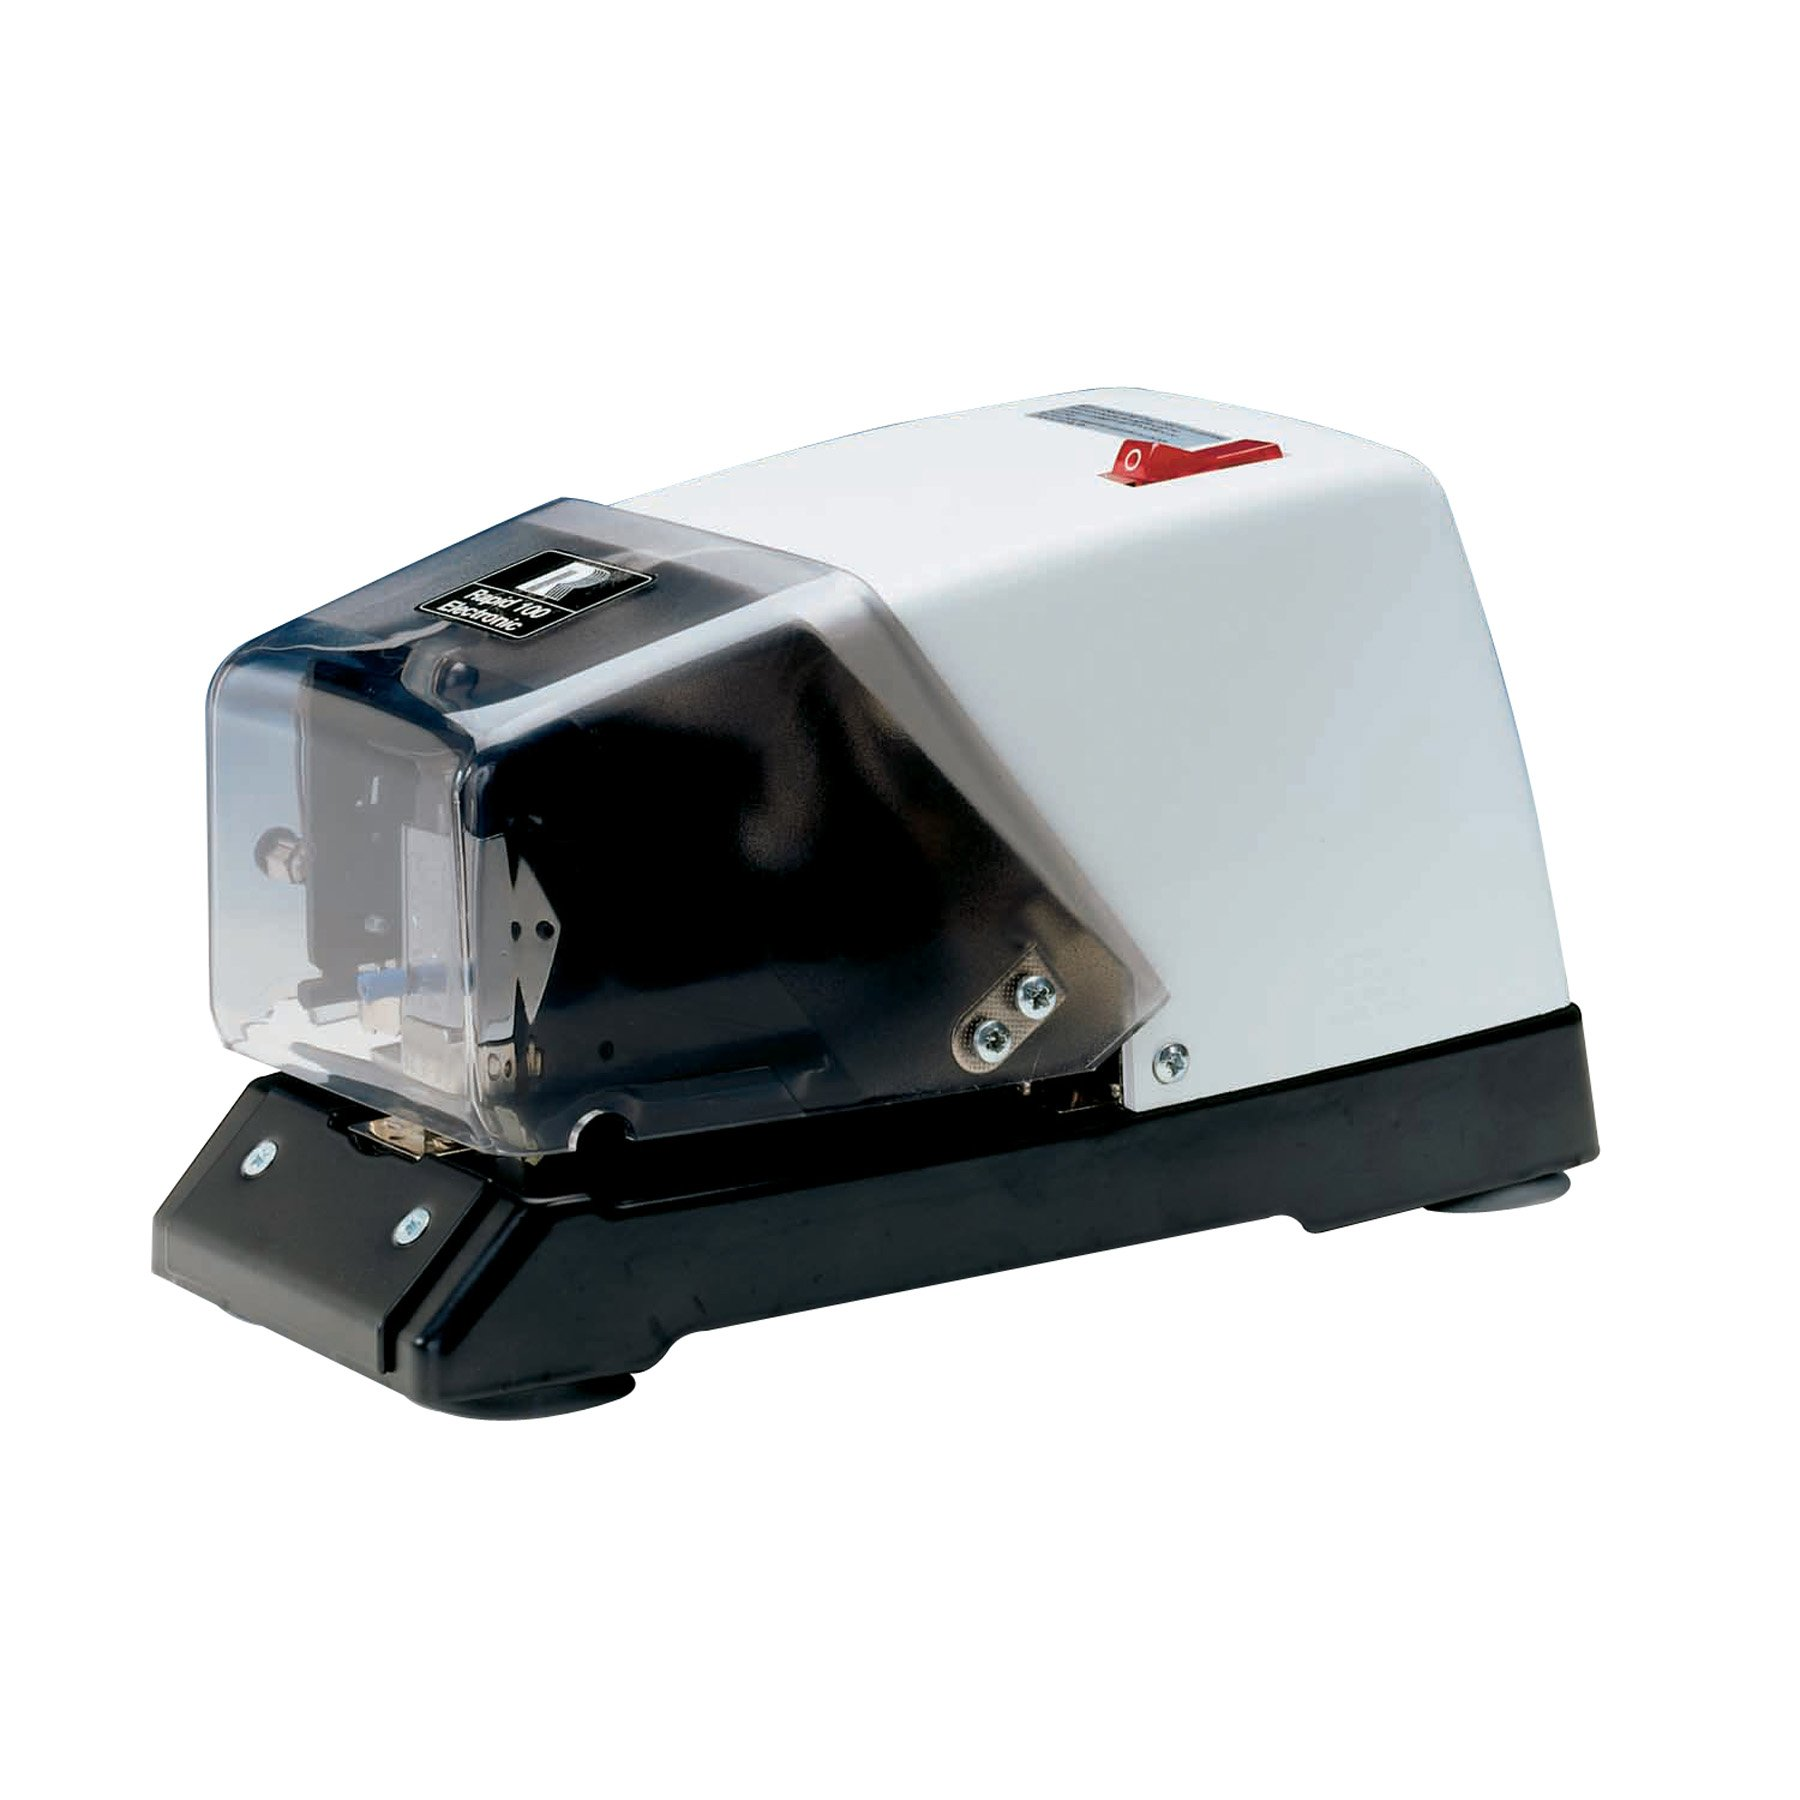 Rapid 100E Electric Stapler, Black and White (2044)